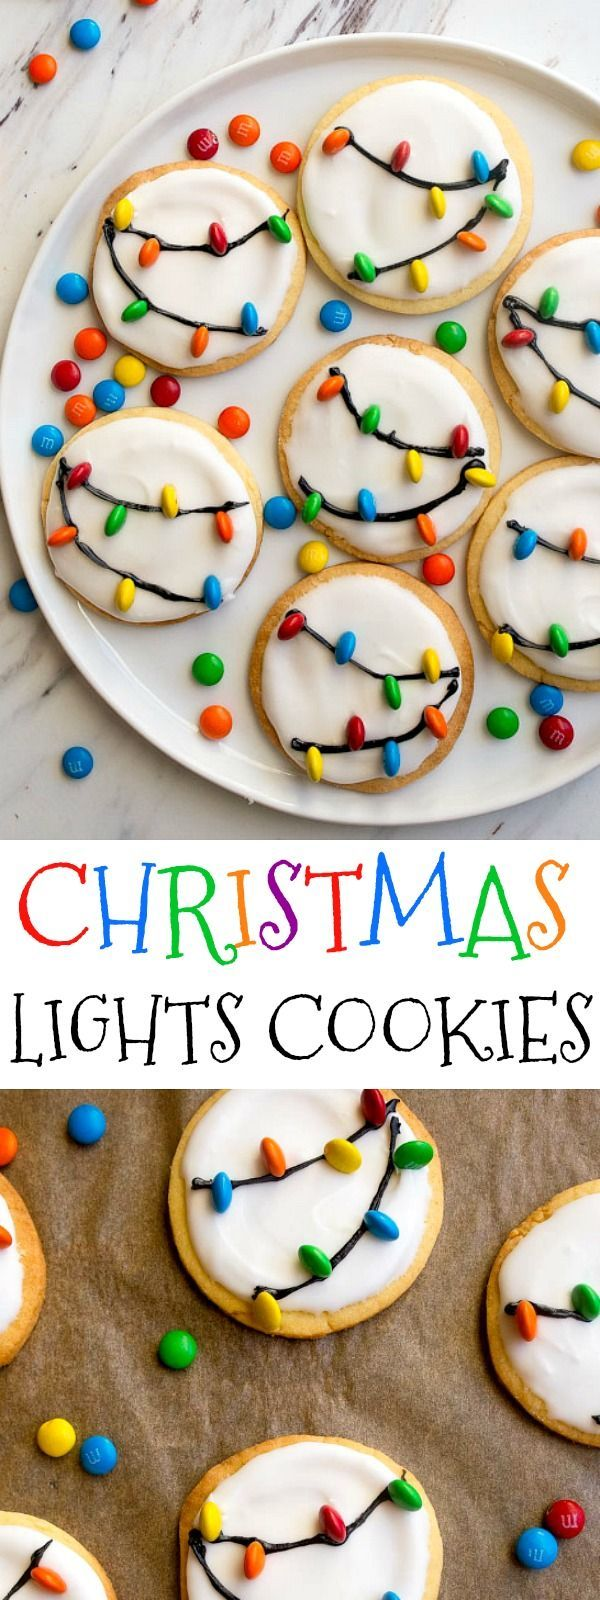 Christmas Lights Cookies with Royal Icing   Dessert for Two